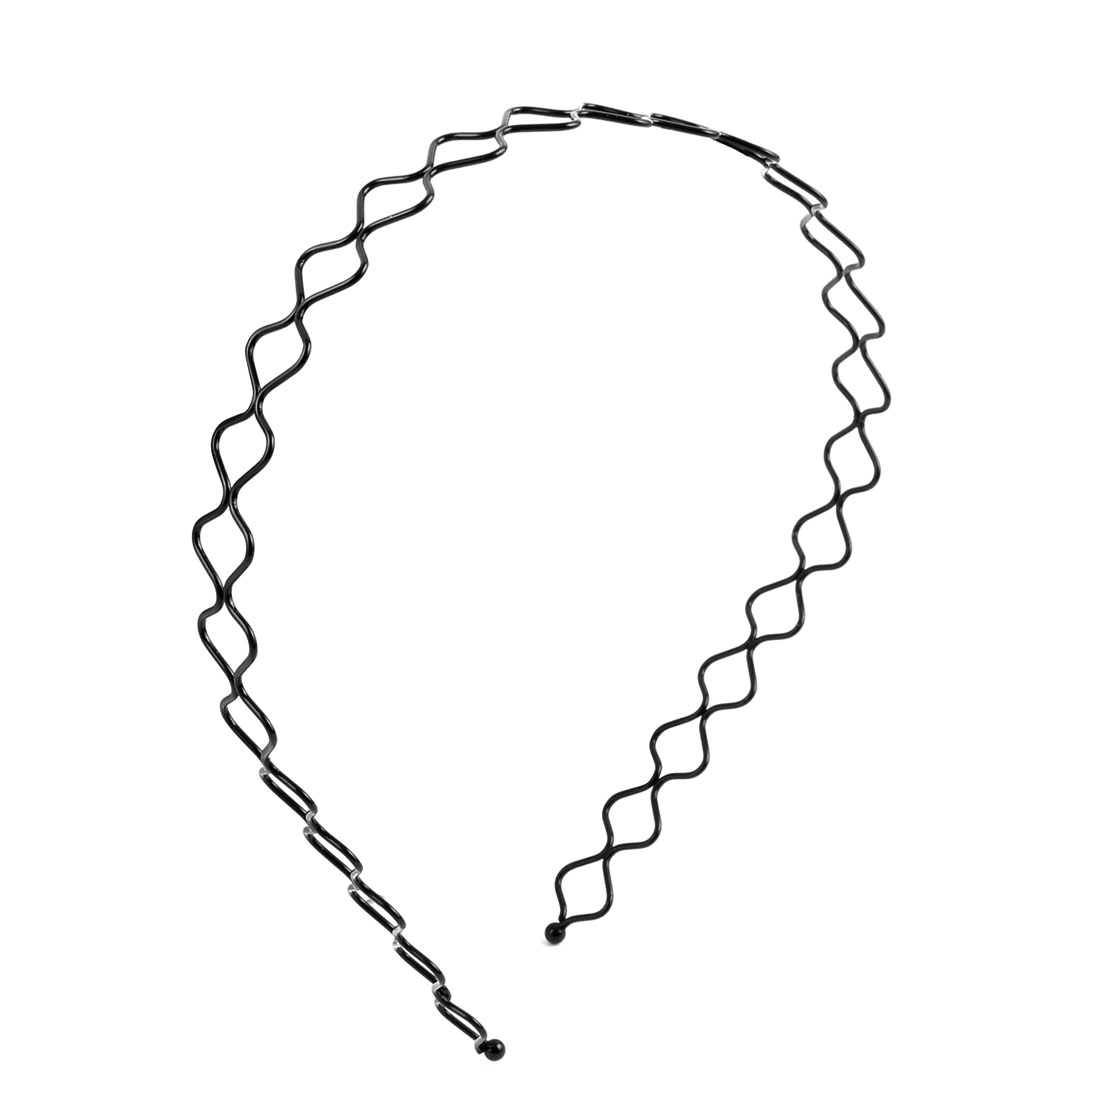 Unisex Metal Wavy Style Sports Hair Hoop Holder Headware Curve Headband Black